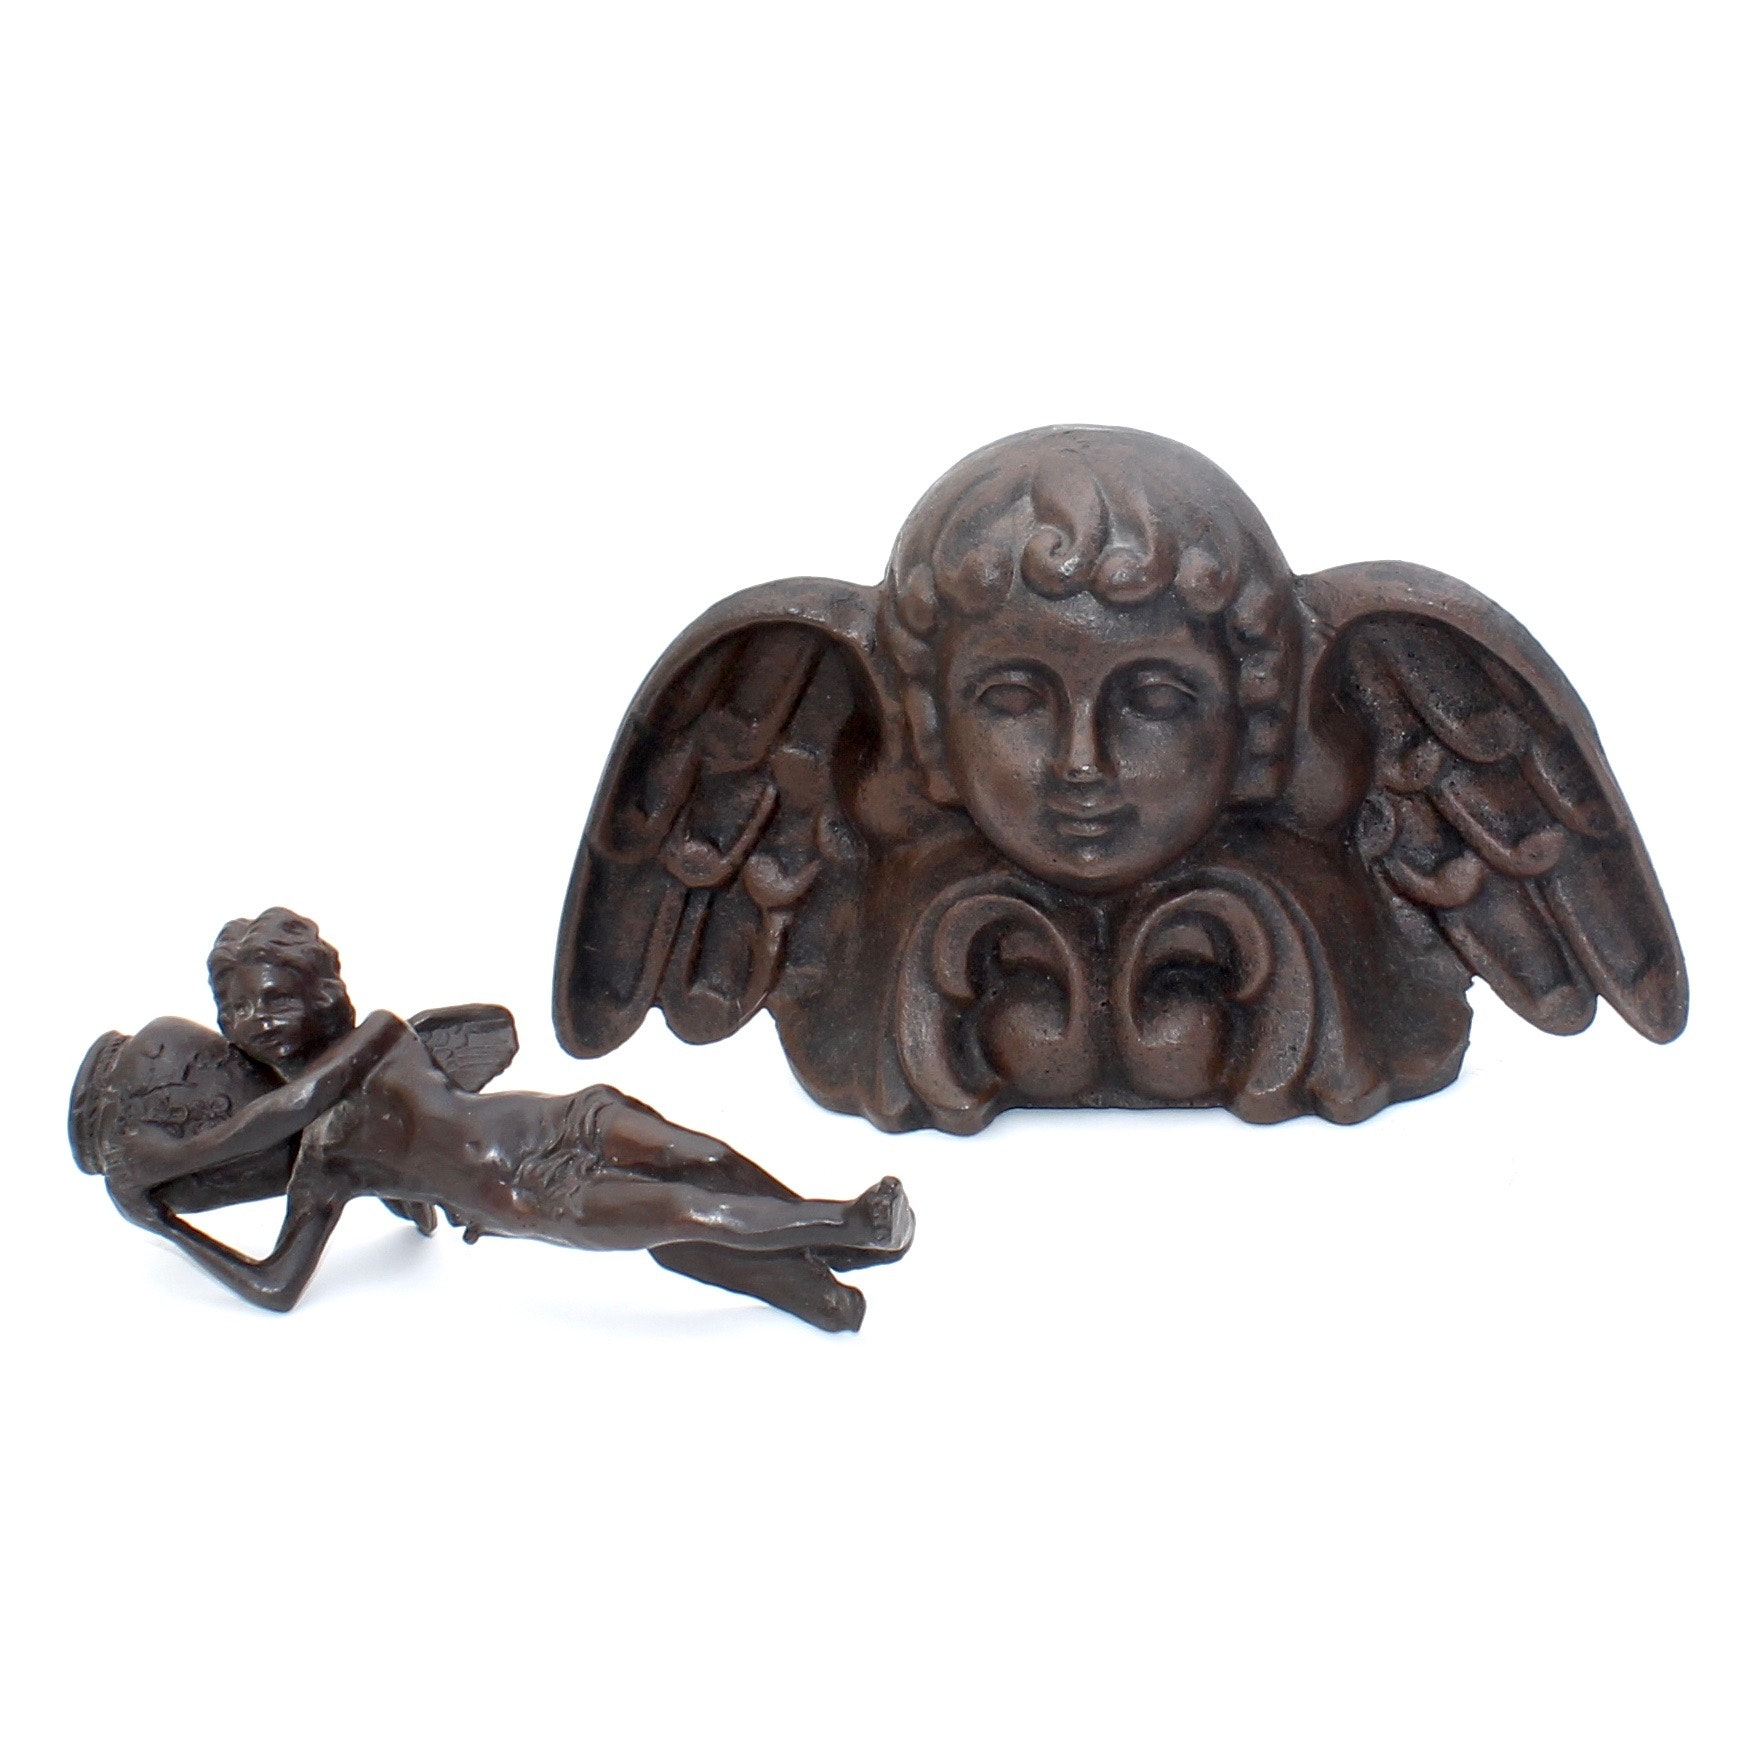 Angel Sculptures in Cast Iron and Bronze